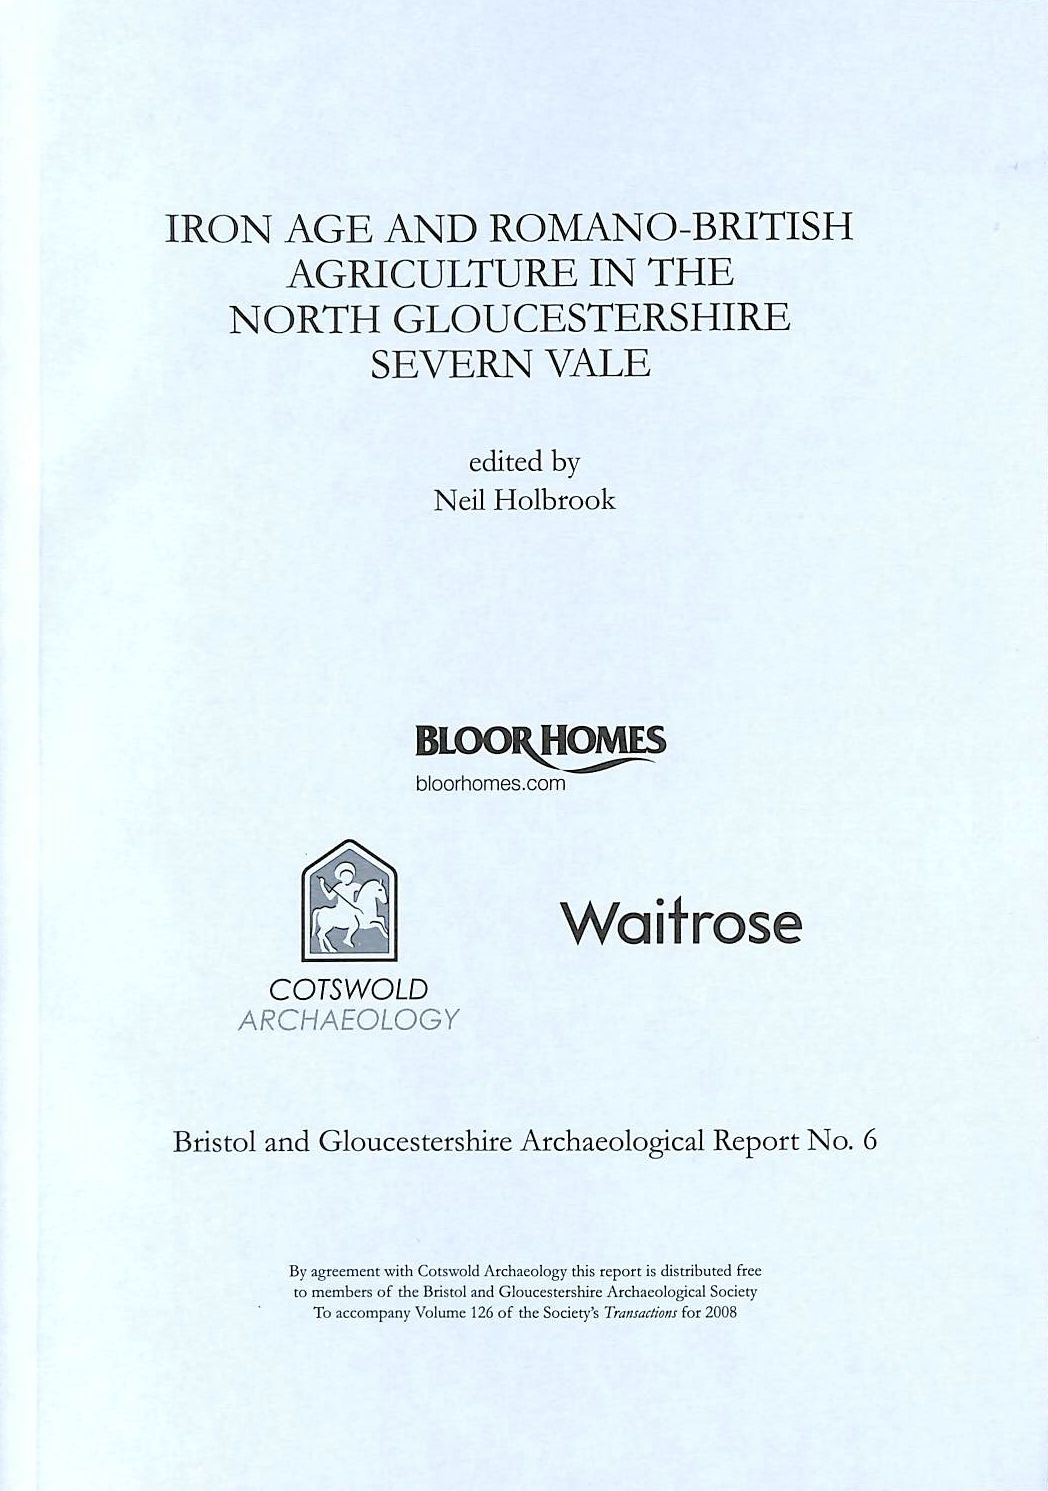 Image for Iron Age and Romano-British Agriculture in the North Gloucestershire Severn Vale